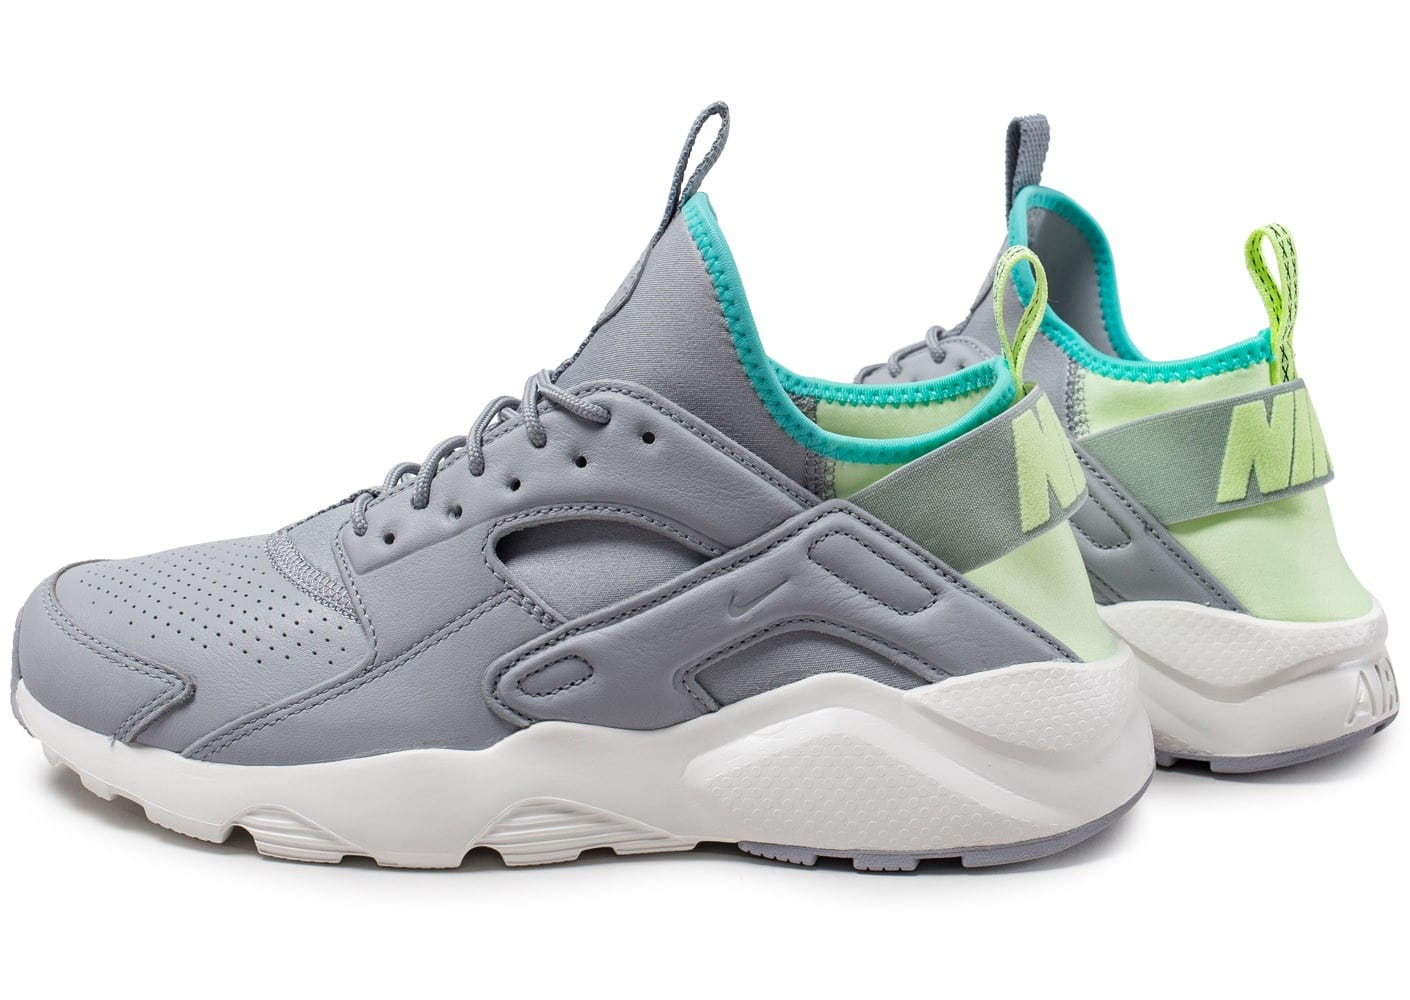 Nike Air Huarache Ultra grise et verte Chaussures Baskets